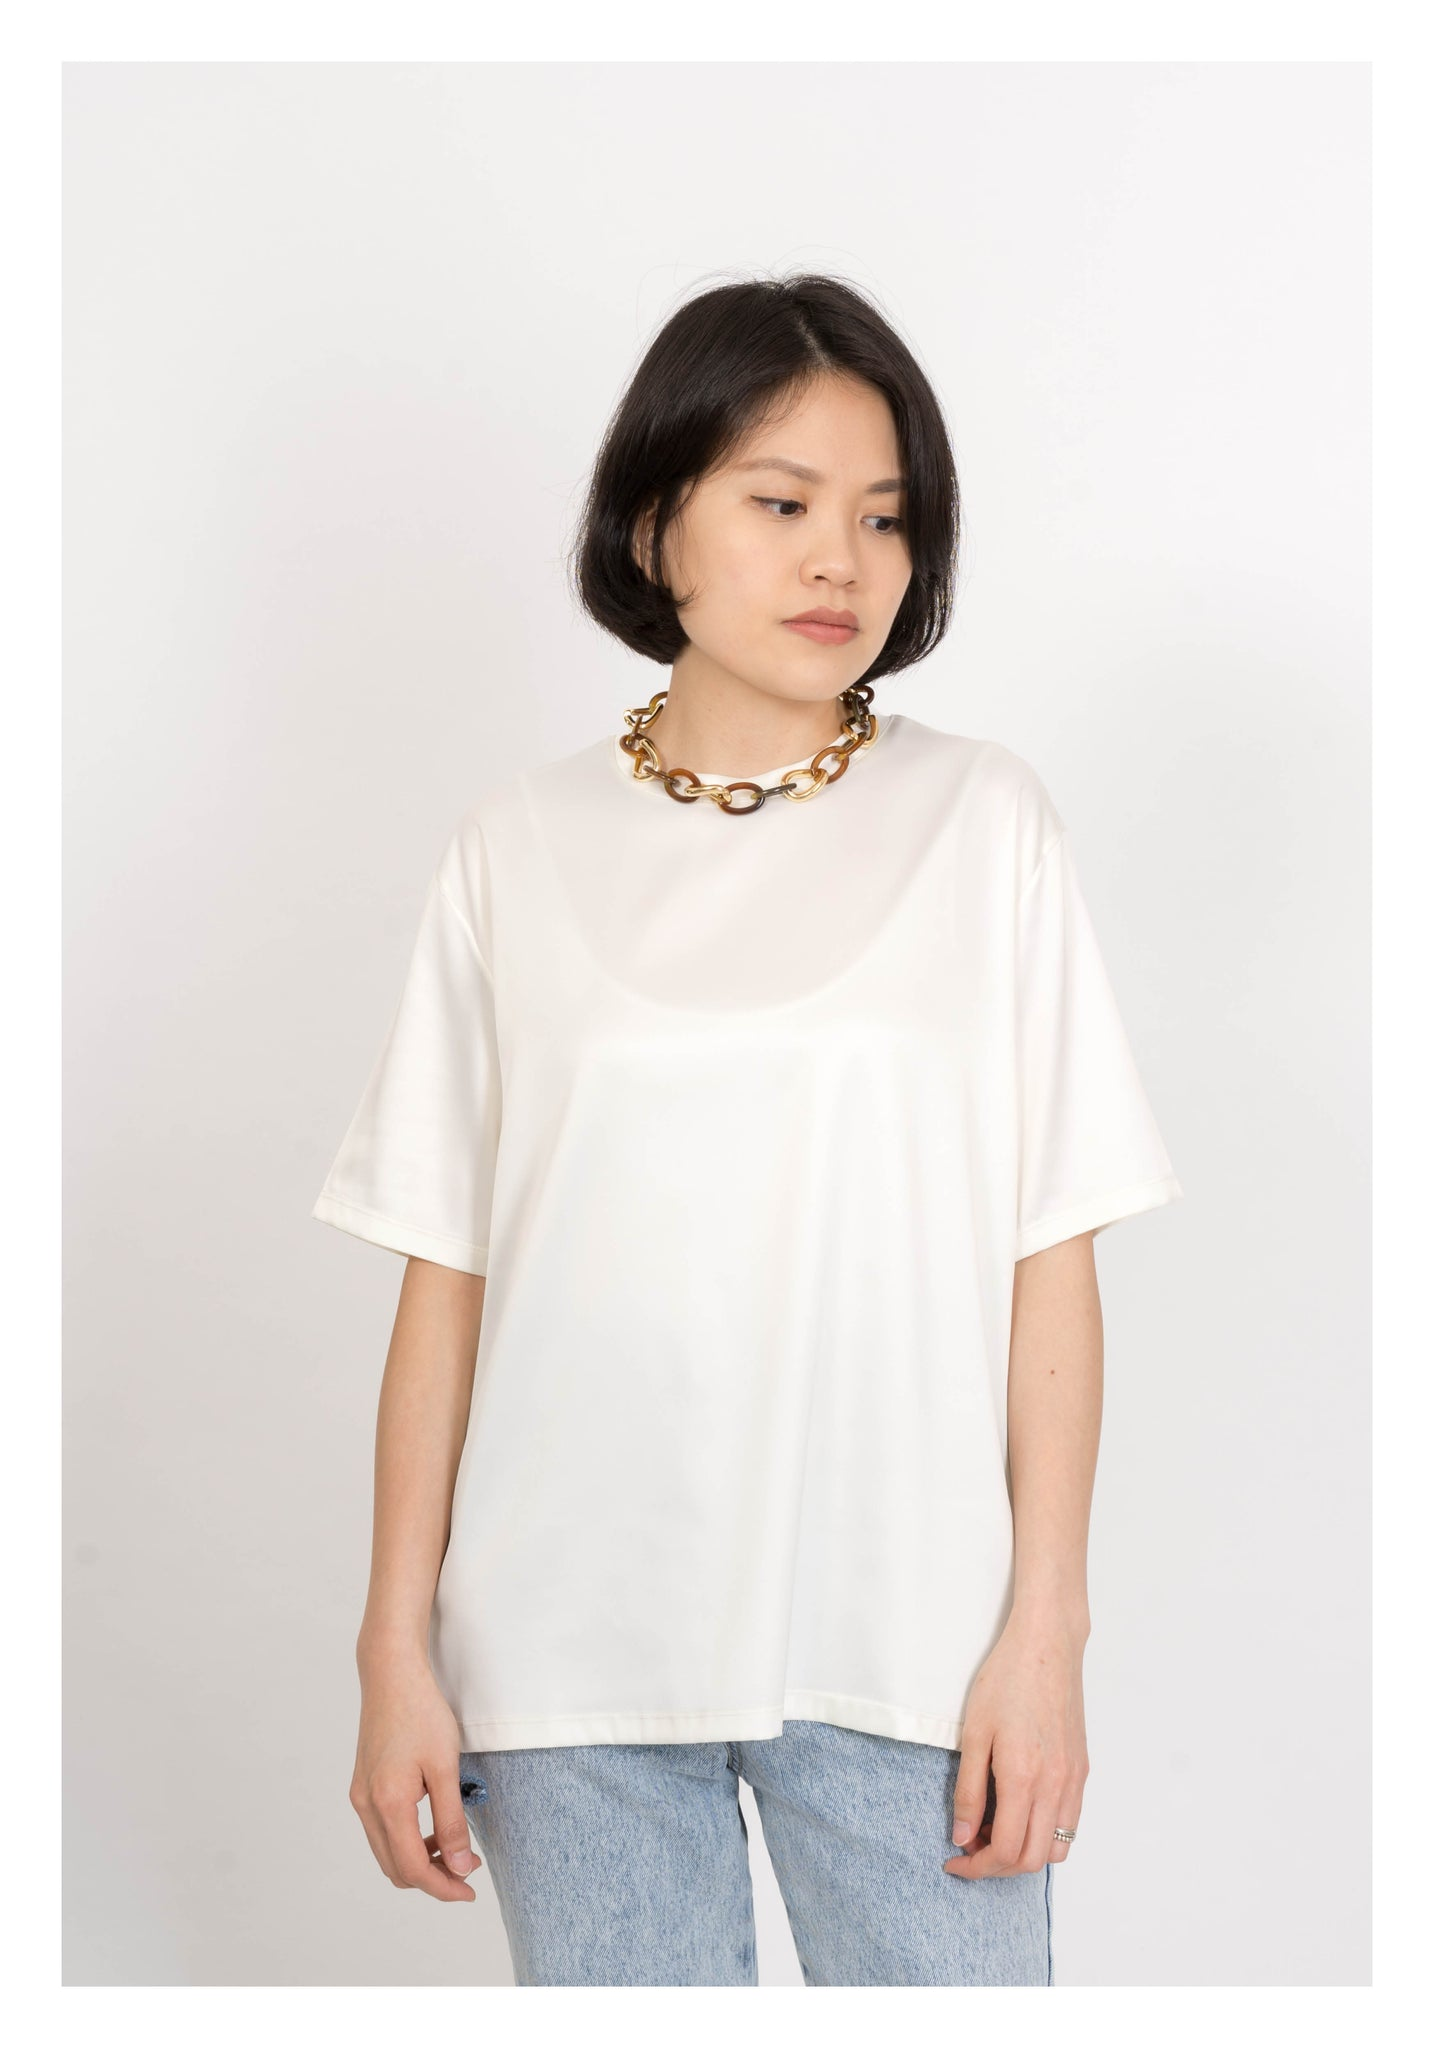 Satin Essential Ivory Top - whoami